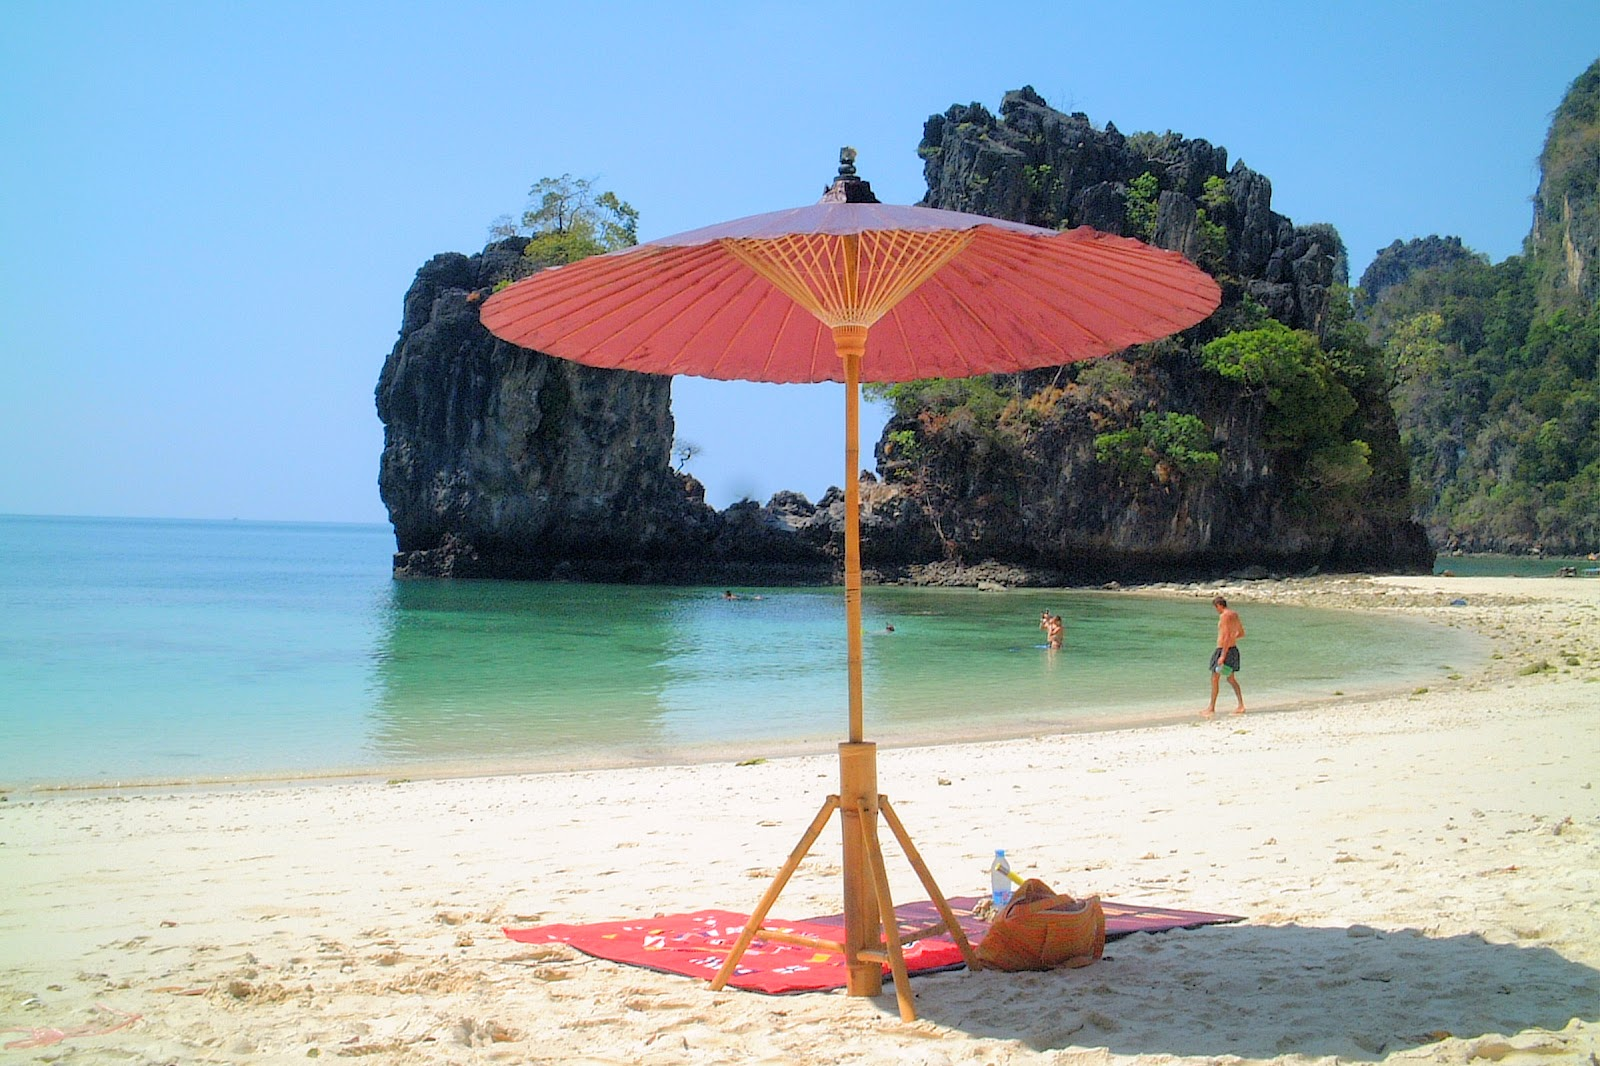 Hong Island Deluxe Tour by Longtail Boat from Krabi